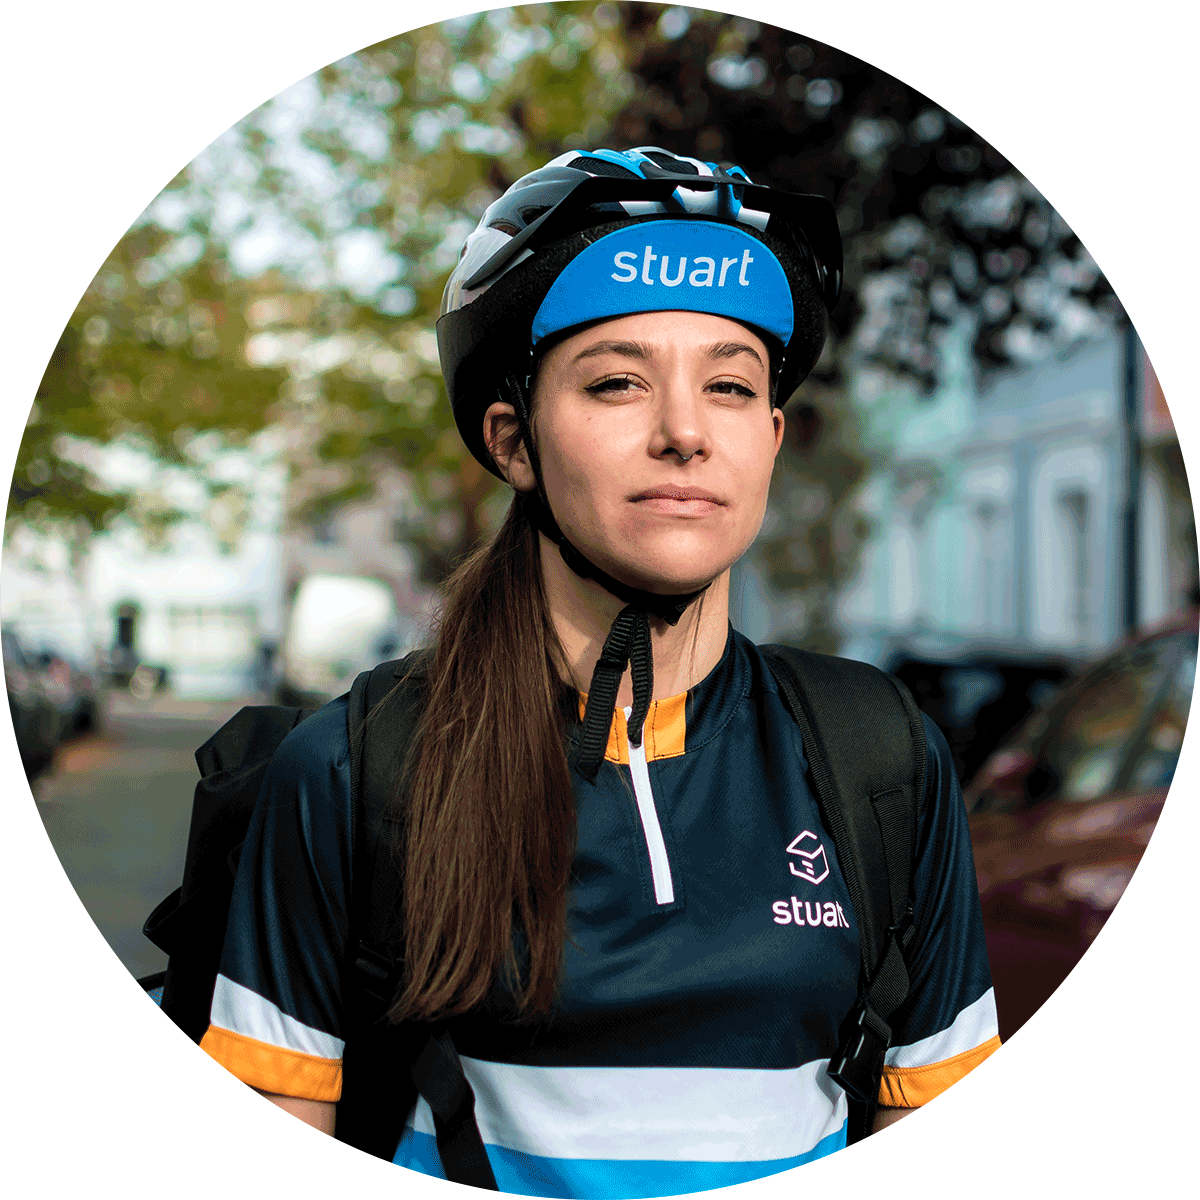 Female Stuart courier wearing helmet for safety stands on a leafy London street